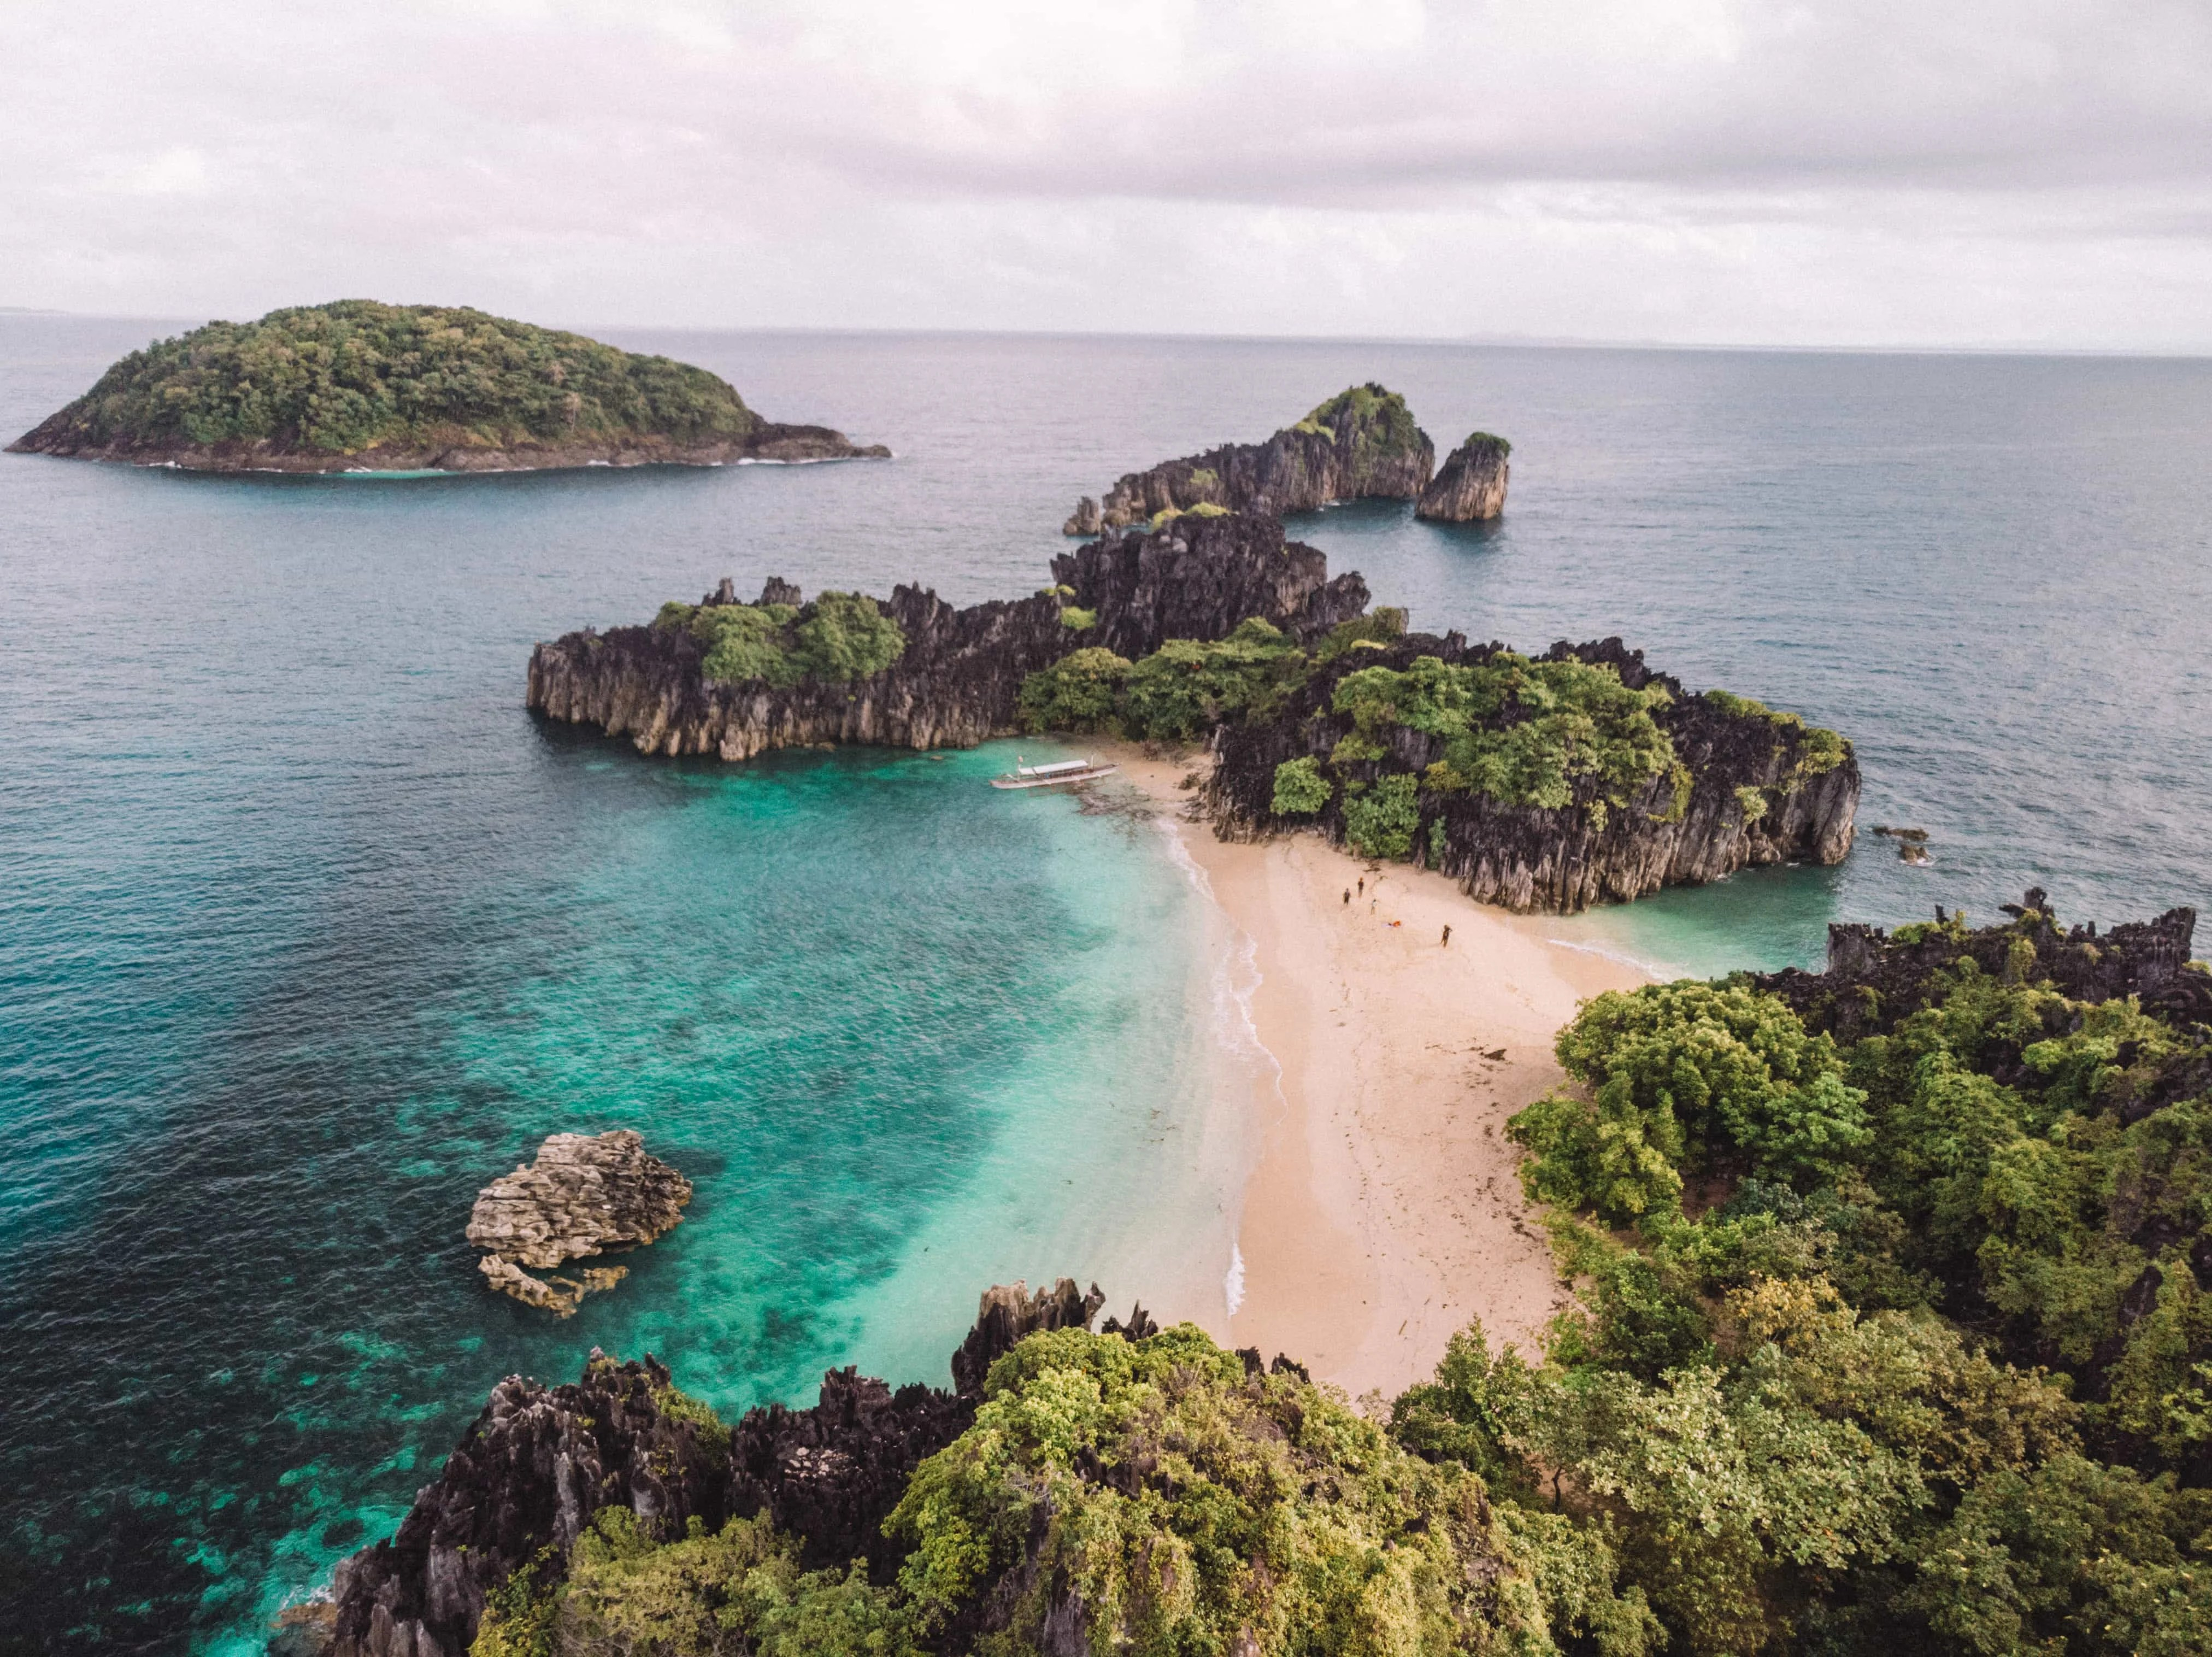 How to get to Caramoan